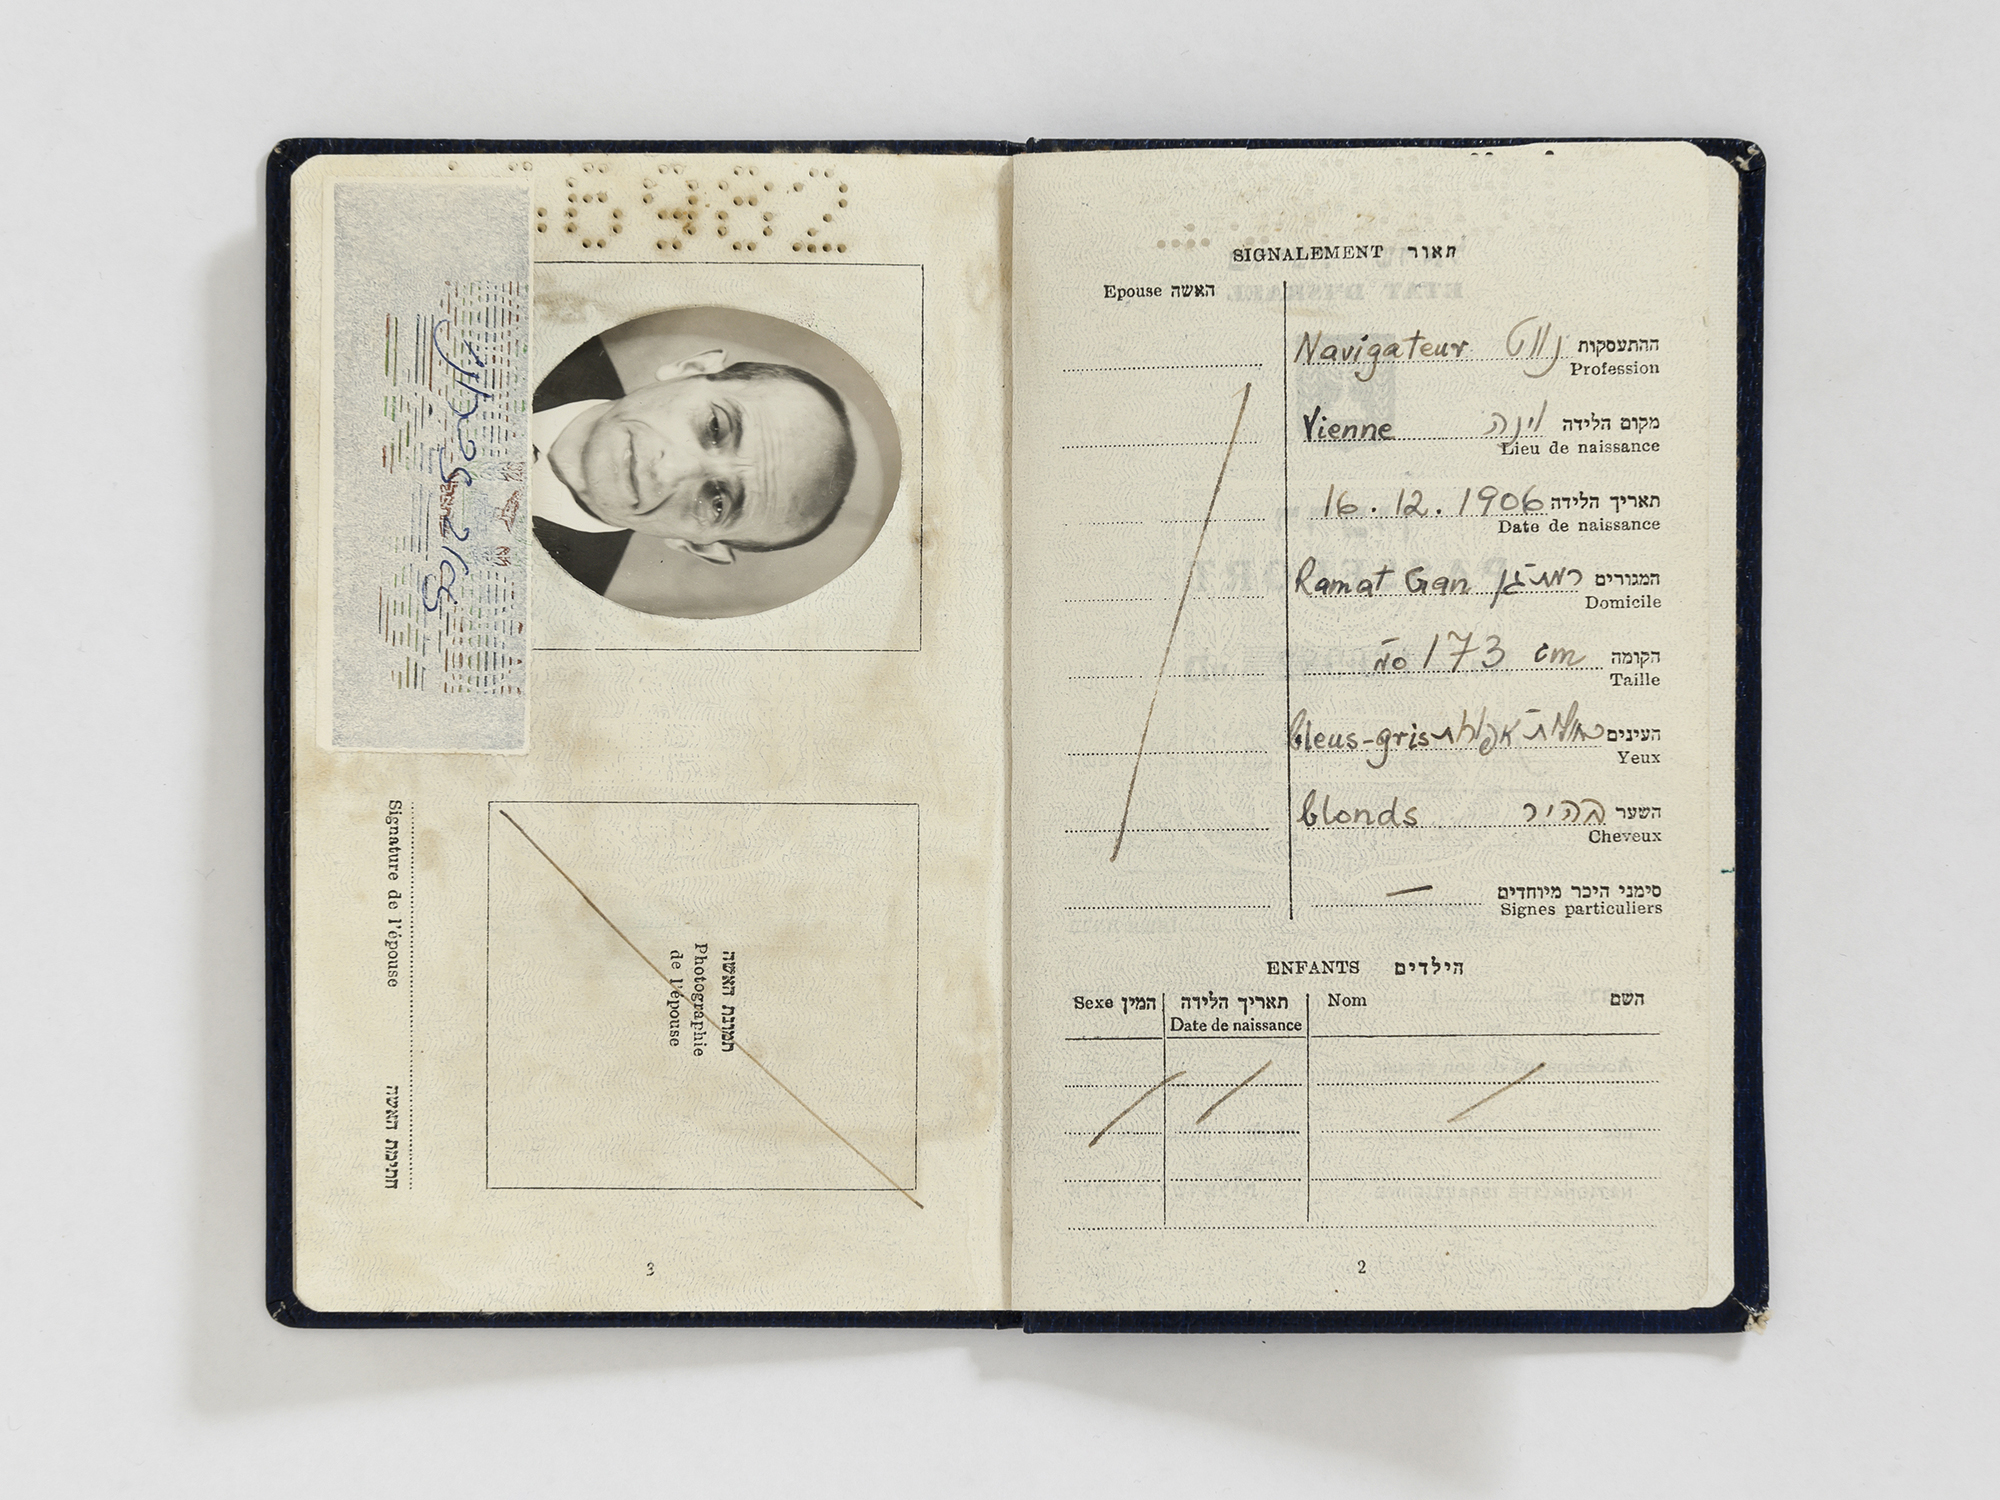 """Falsified Israeli passport prepared for Adolf Eichmann in the name of """"Ze'ev Zichroni,"""" including a photograph that was taken and developed in the safe house, 1960 Photo courtesy of Mossad Archive"""